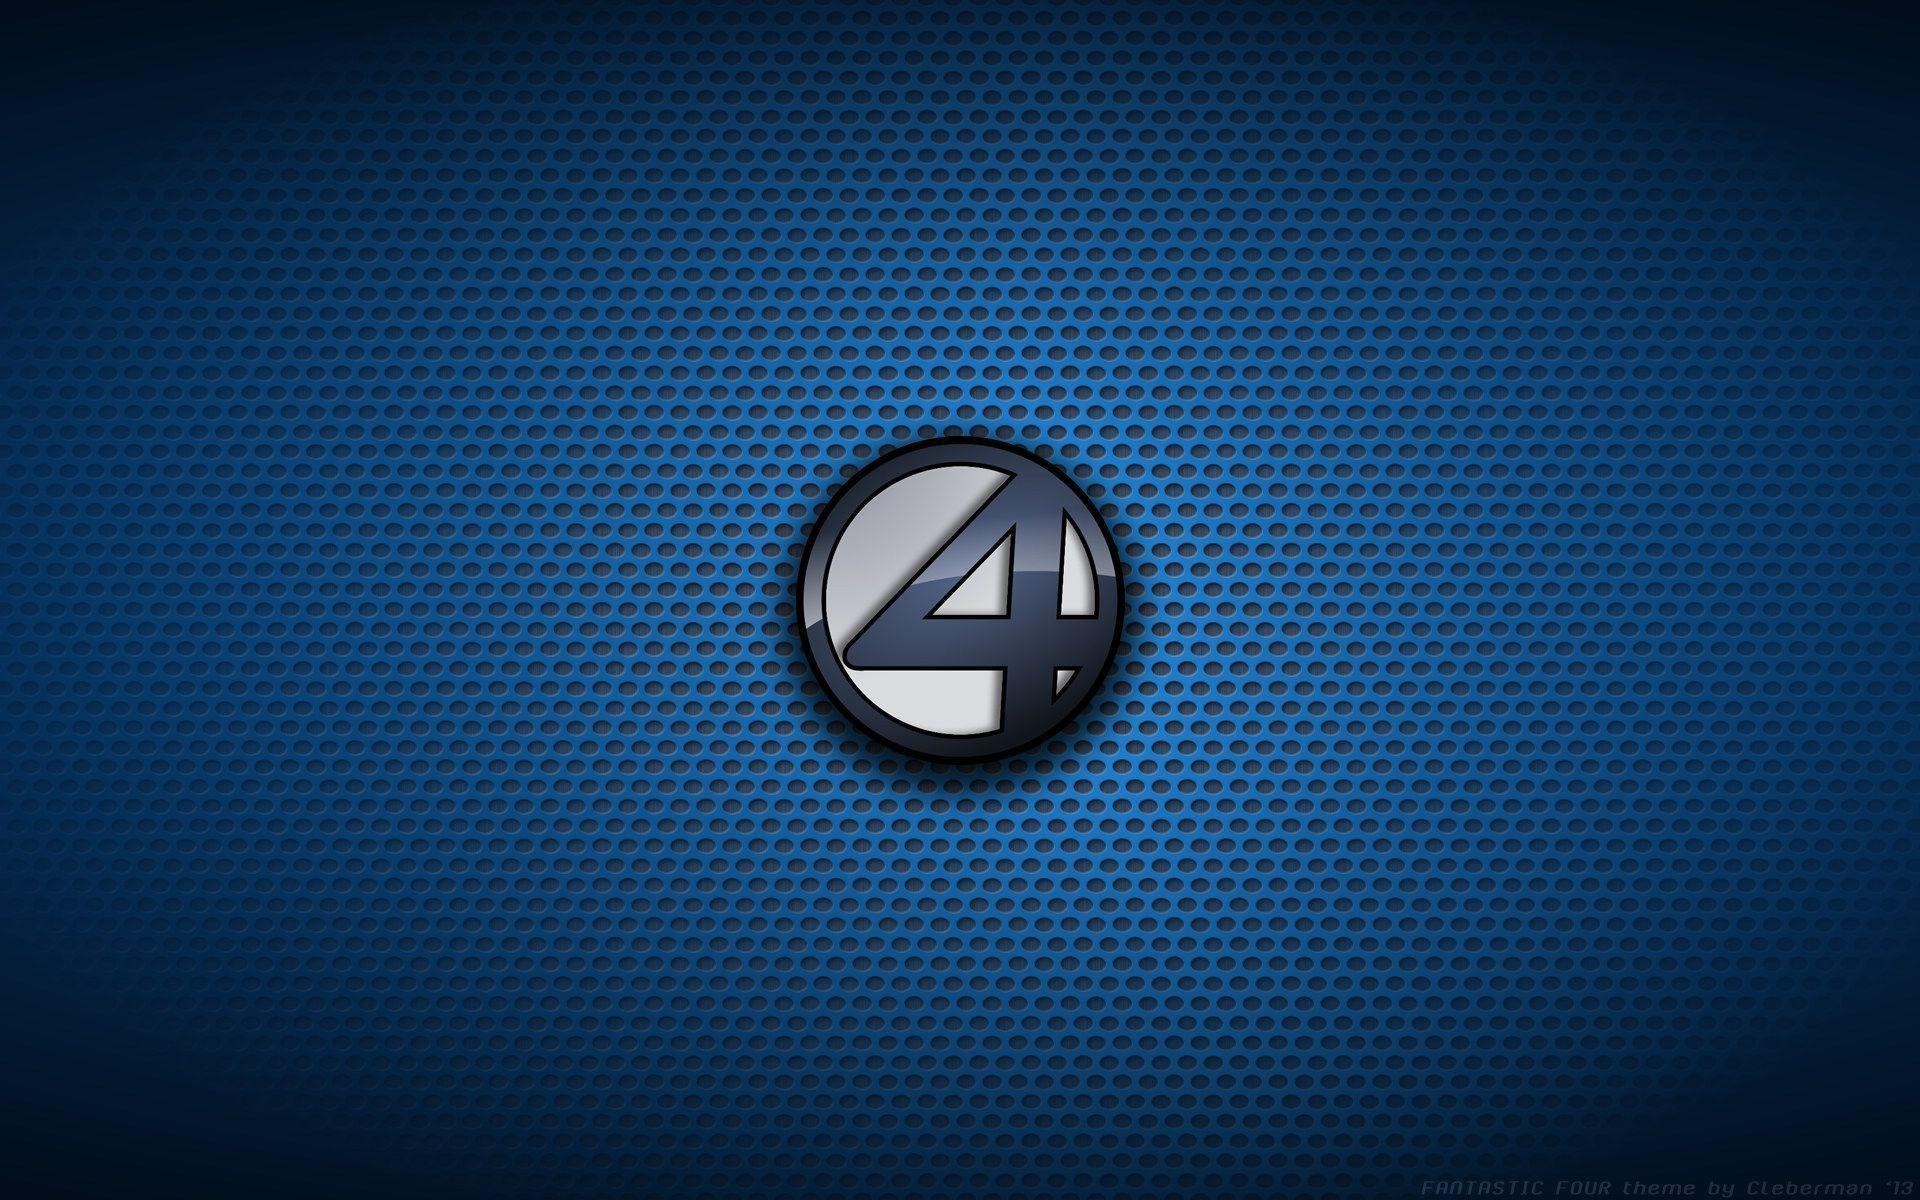 cool hero team logo wallpaper - photo #2